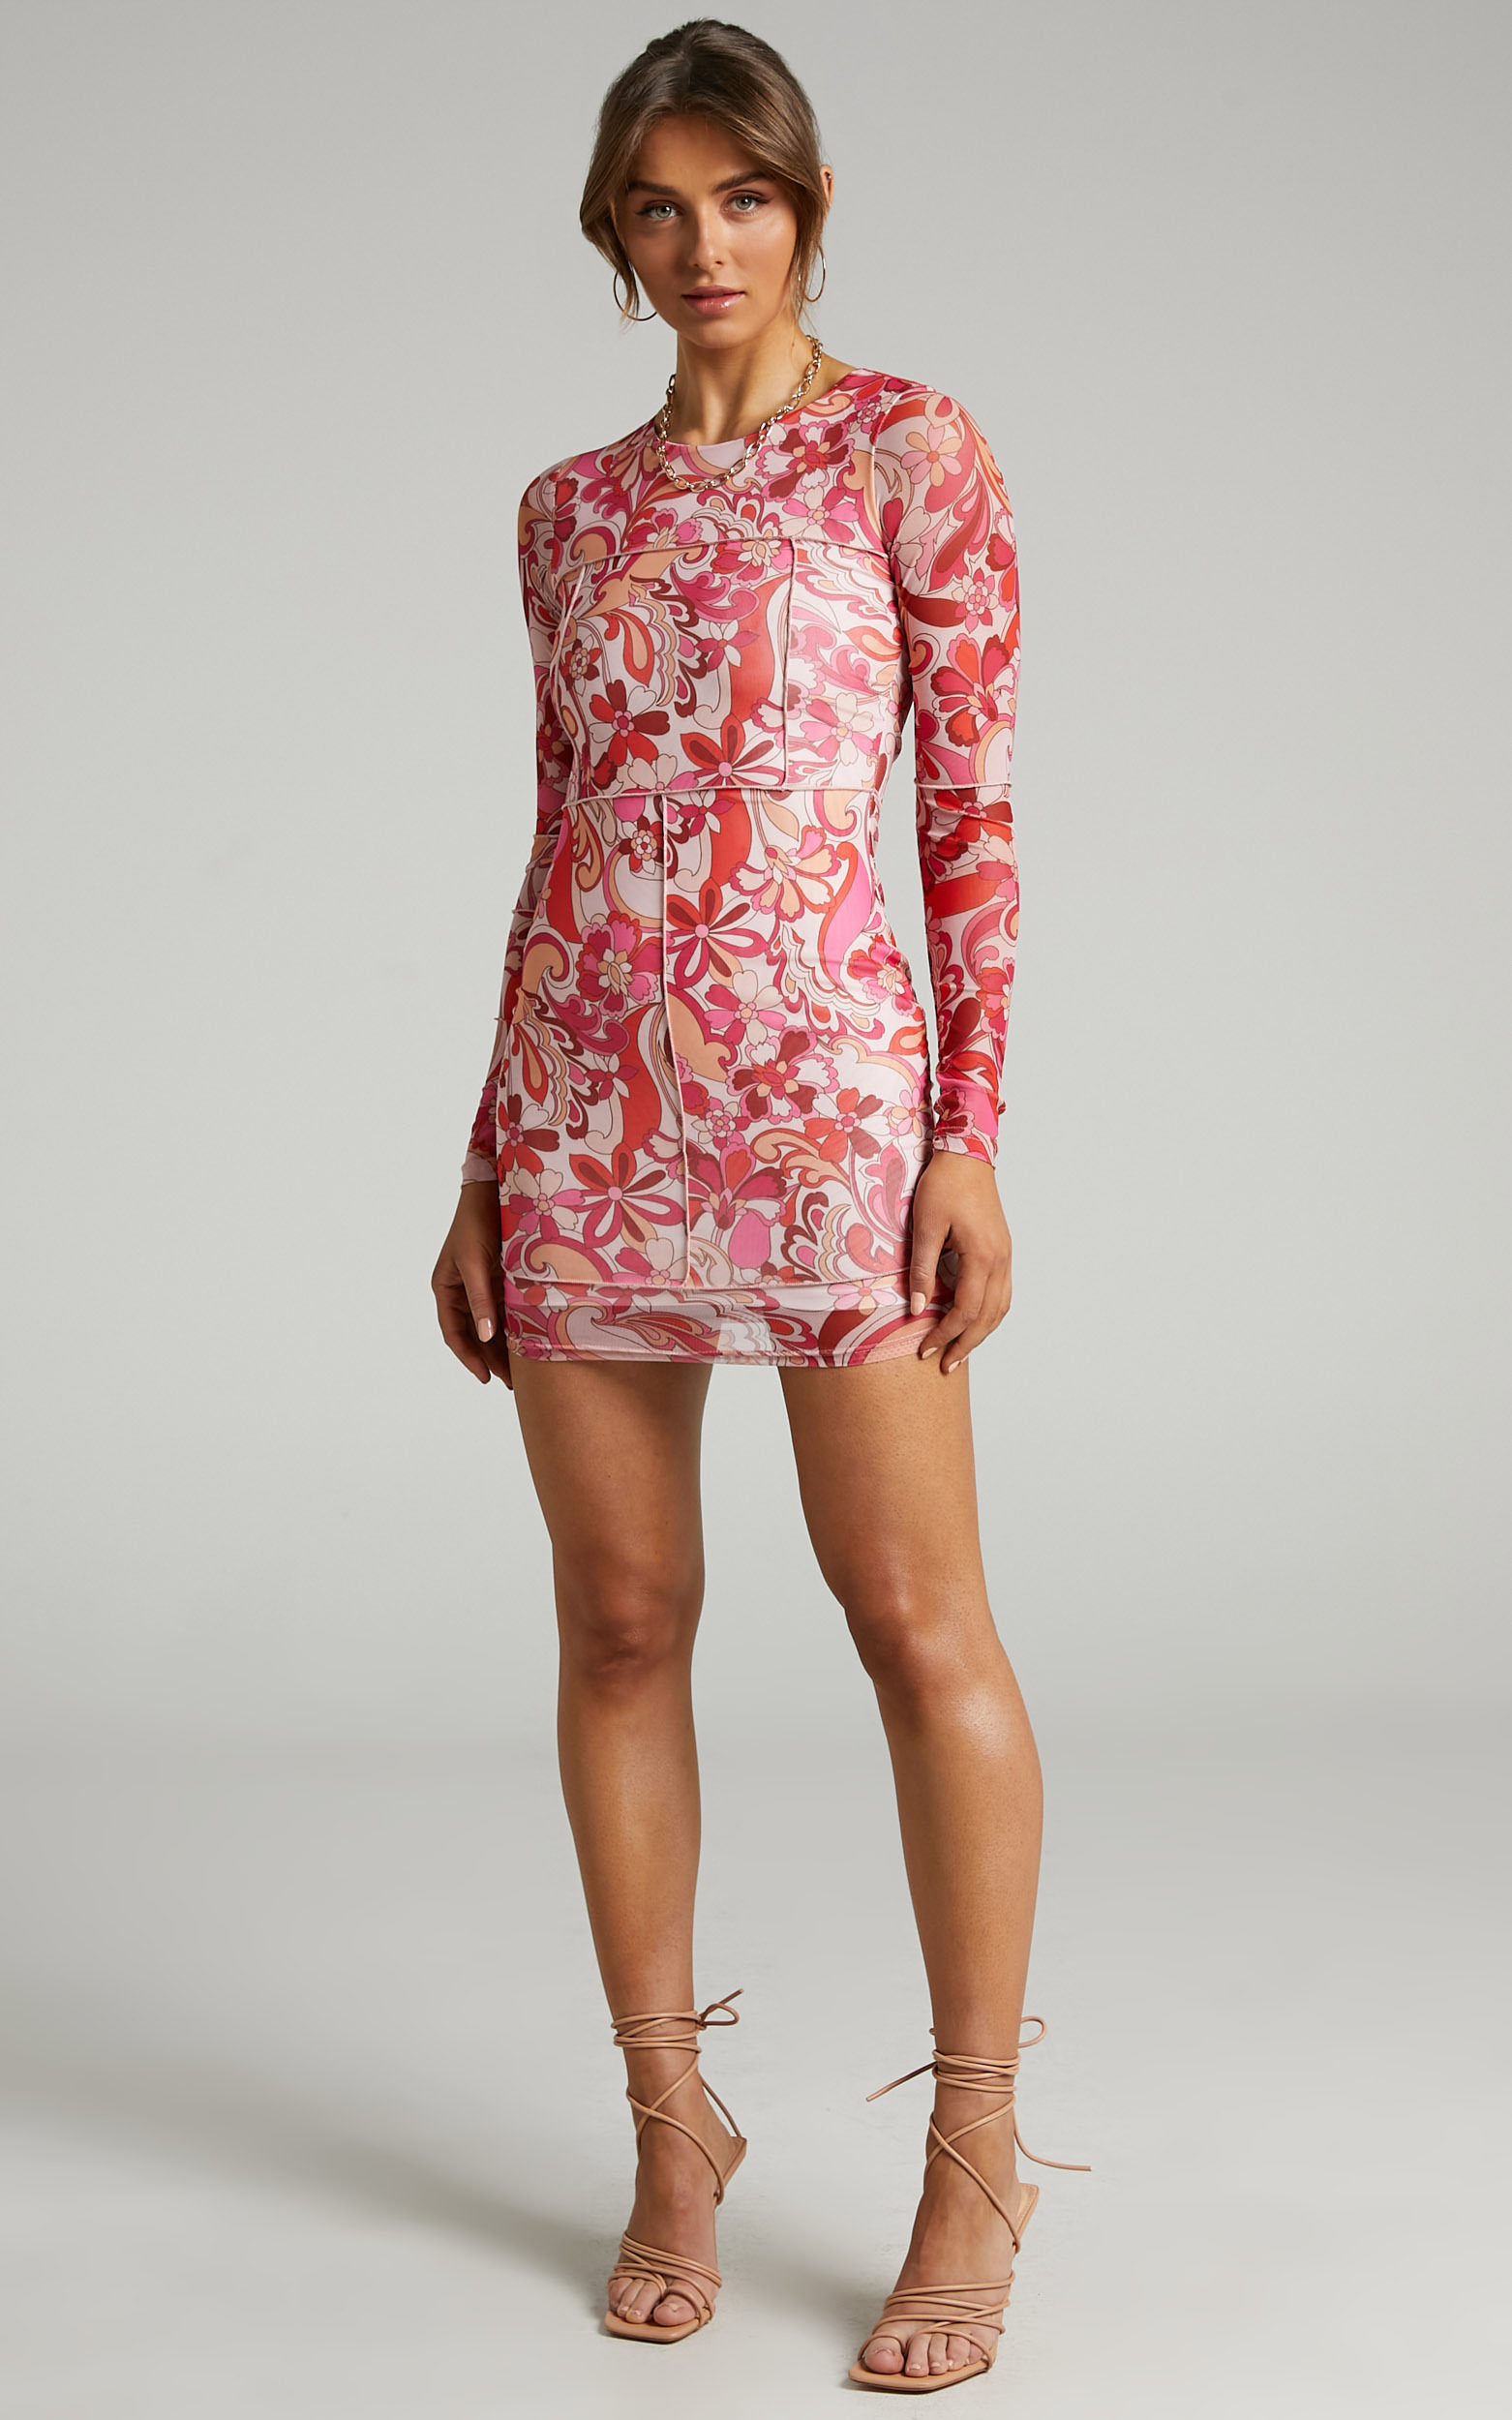 Anakin Long sleeve Mesh Mini dress in Love Child - 06, PNK1, hi-res image number null